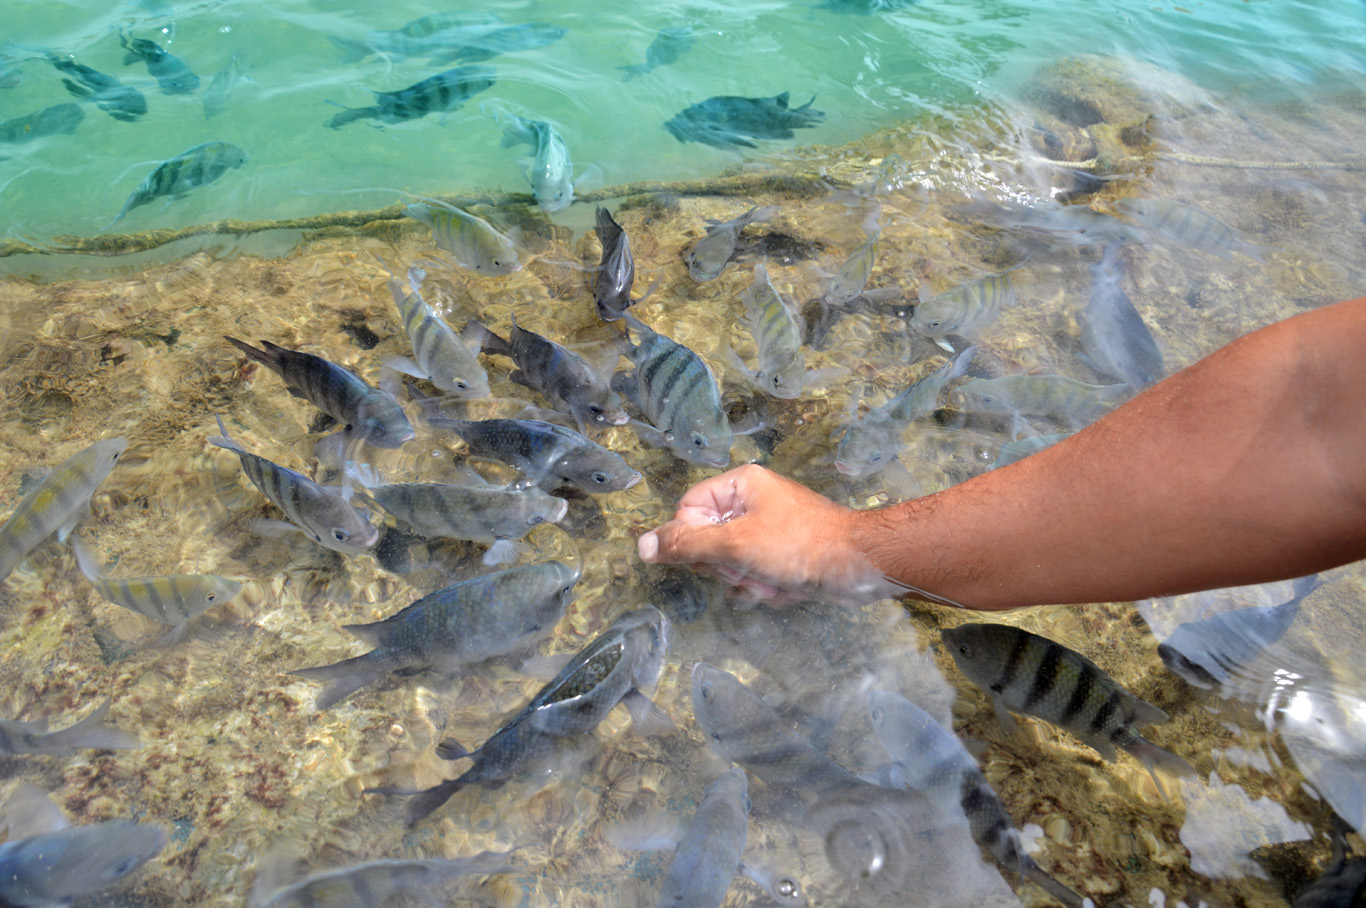 Feeding the fish in a natural pool in Porto de Galinhas